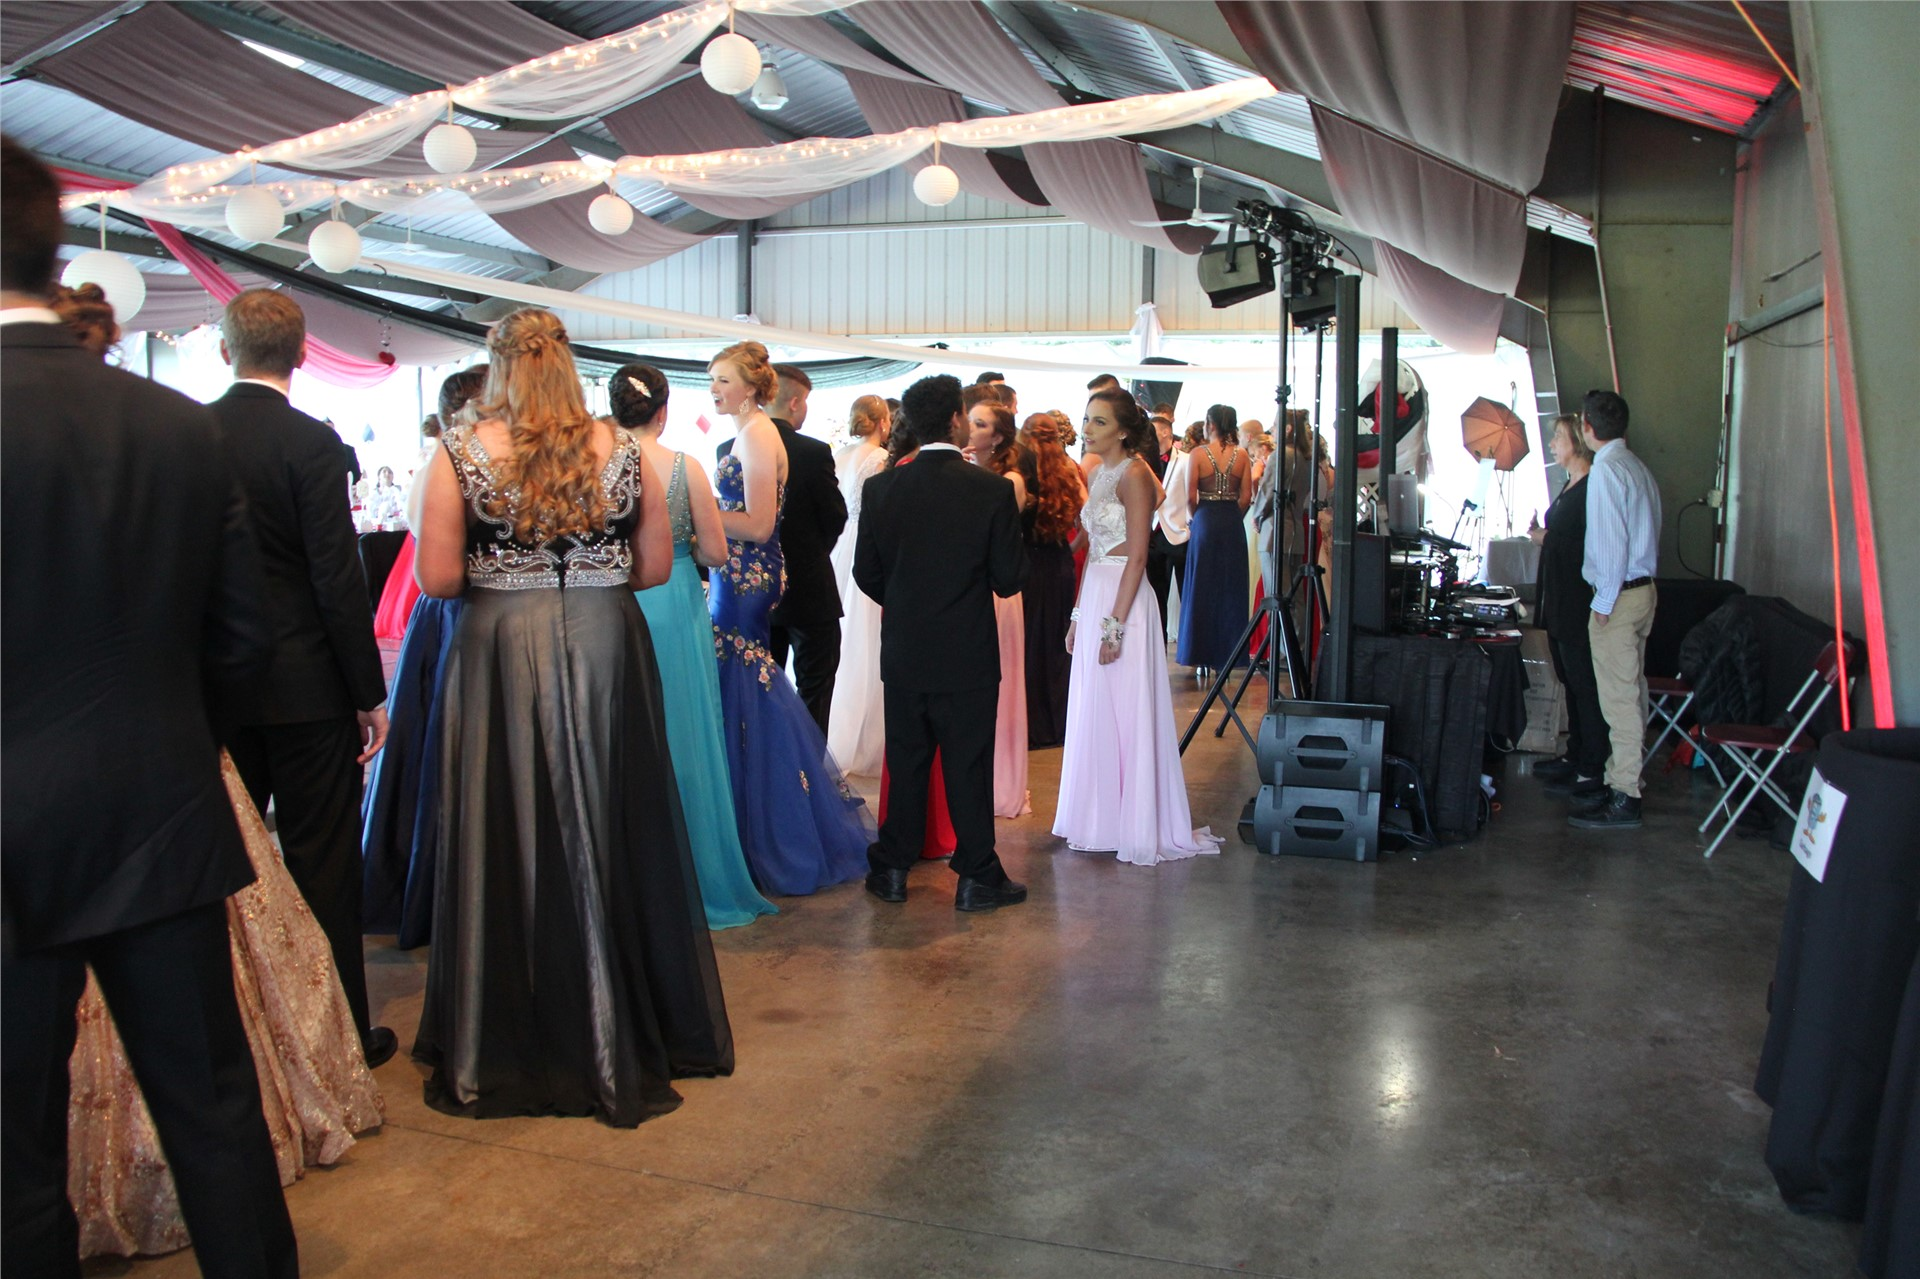 Distance shot of students inside prom